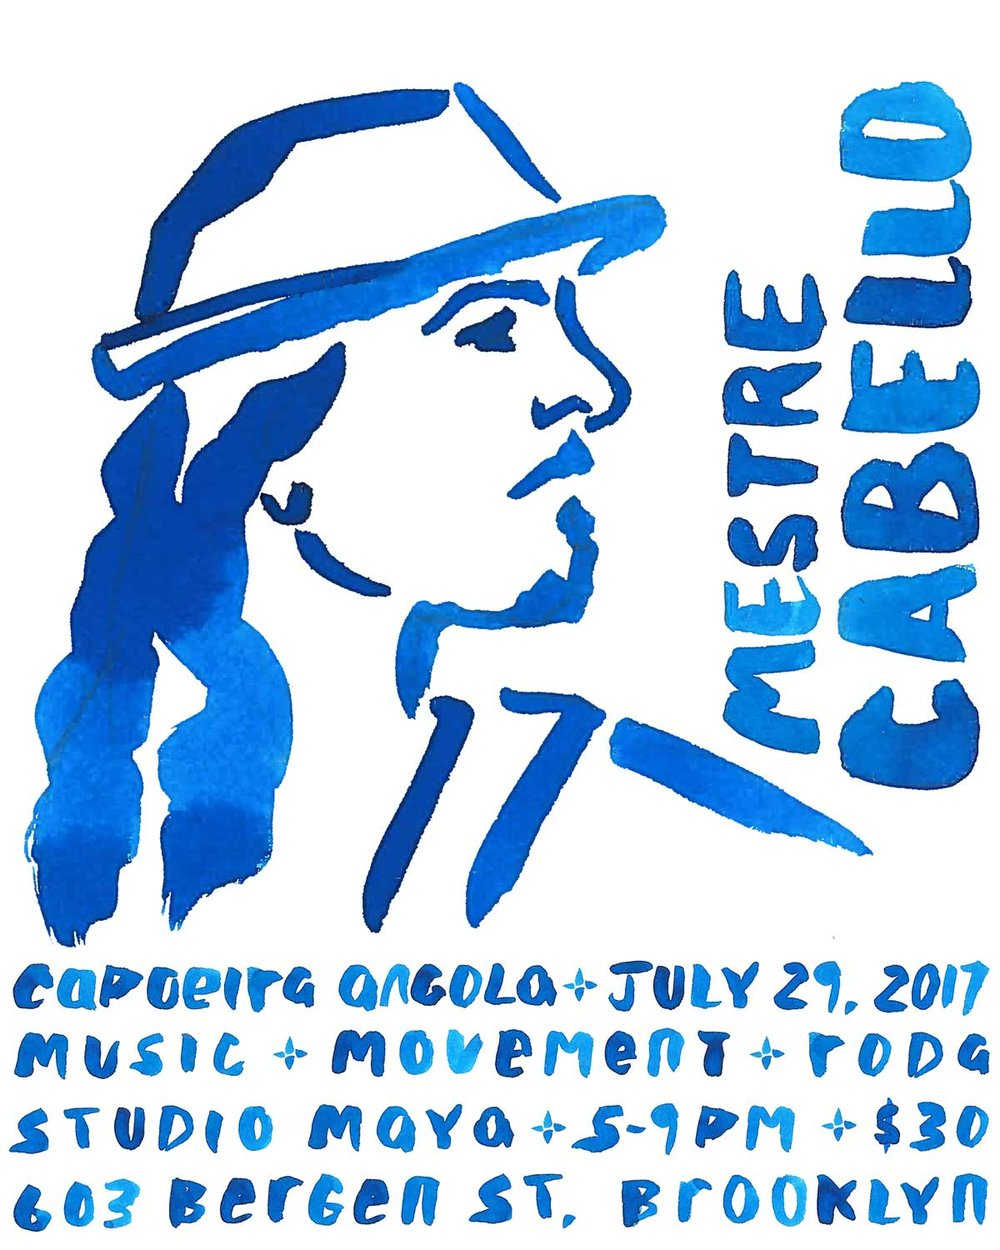 Poster design for capoeira workshop in Brooklyn, NY. 2017.